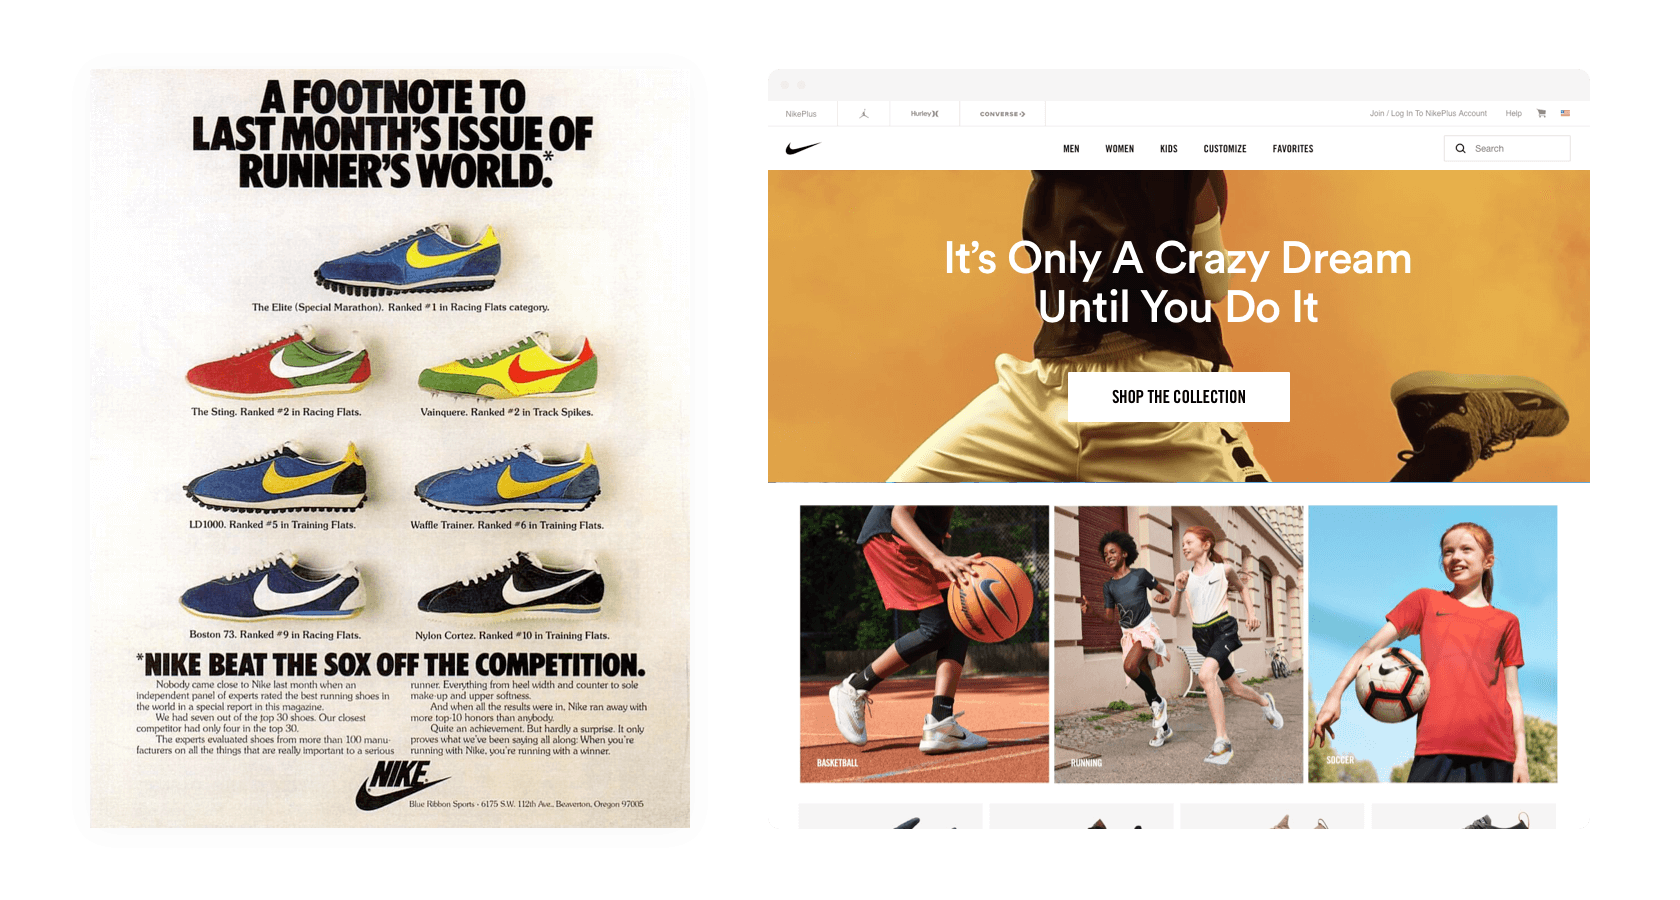 Strong visual hierarchy has persisted through decades of Nike's branding.